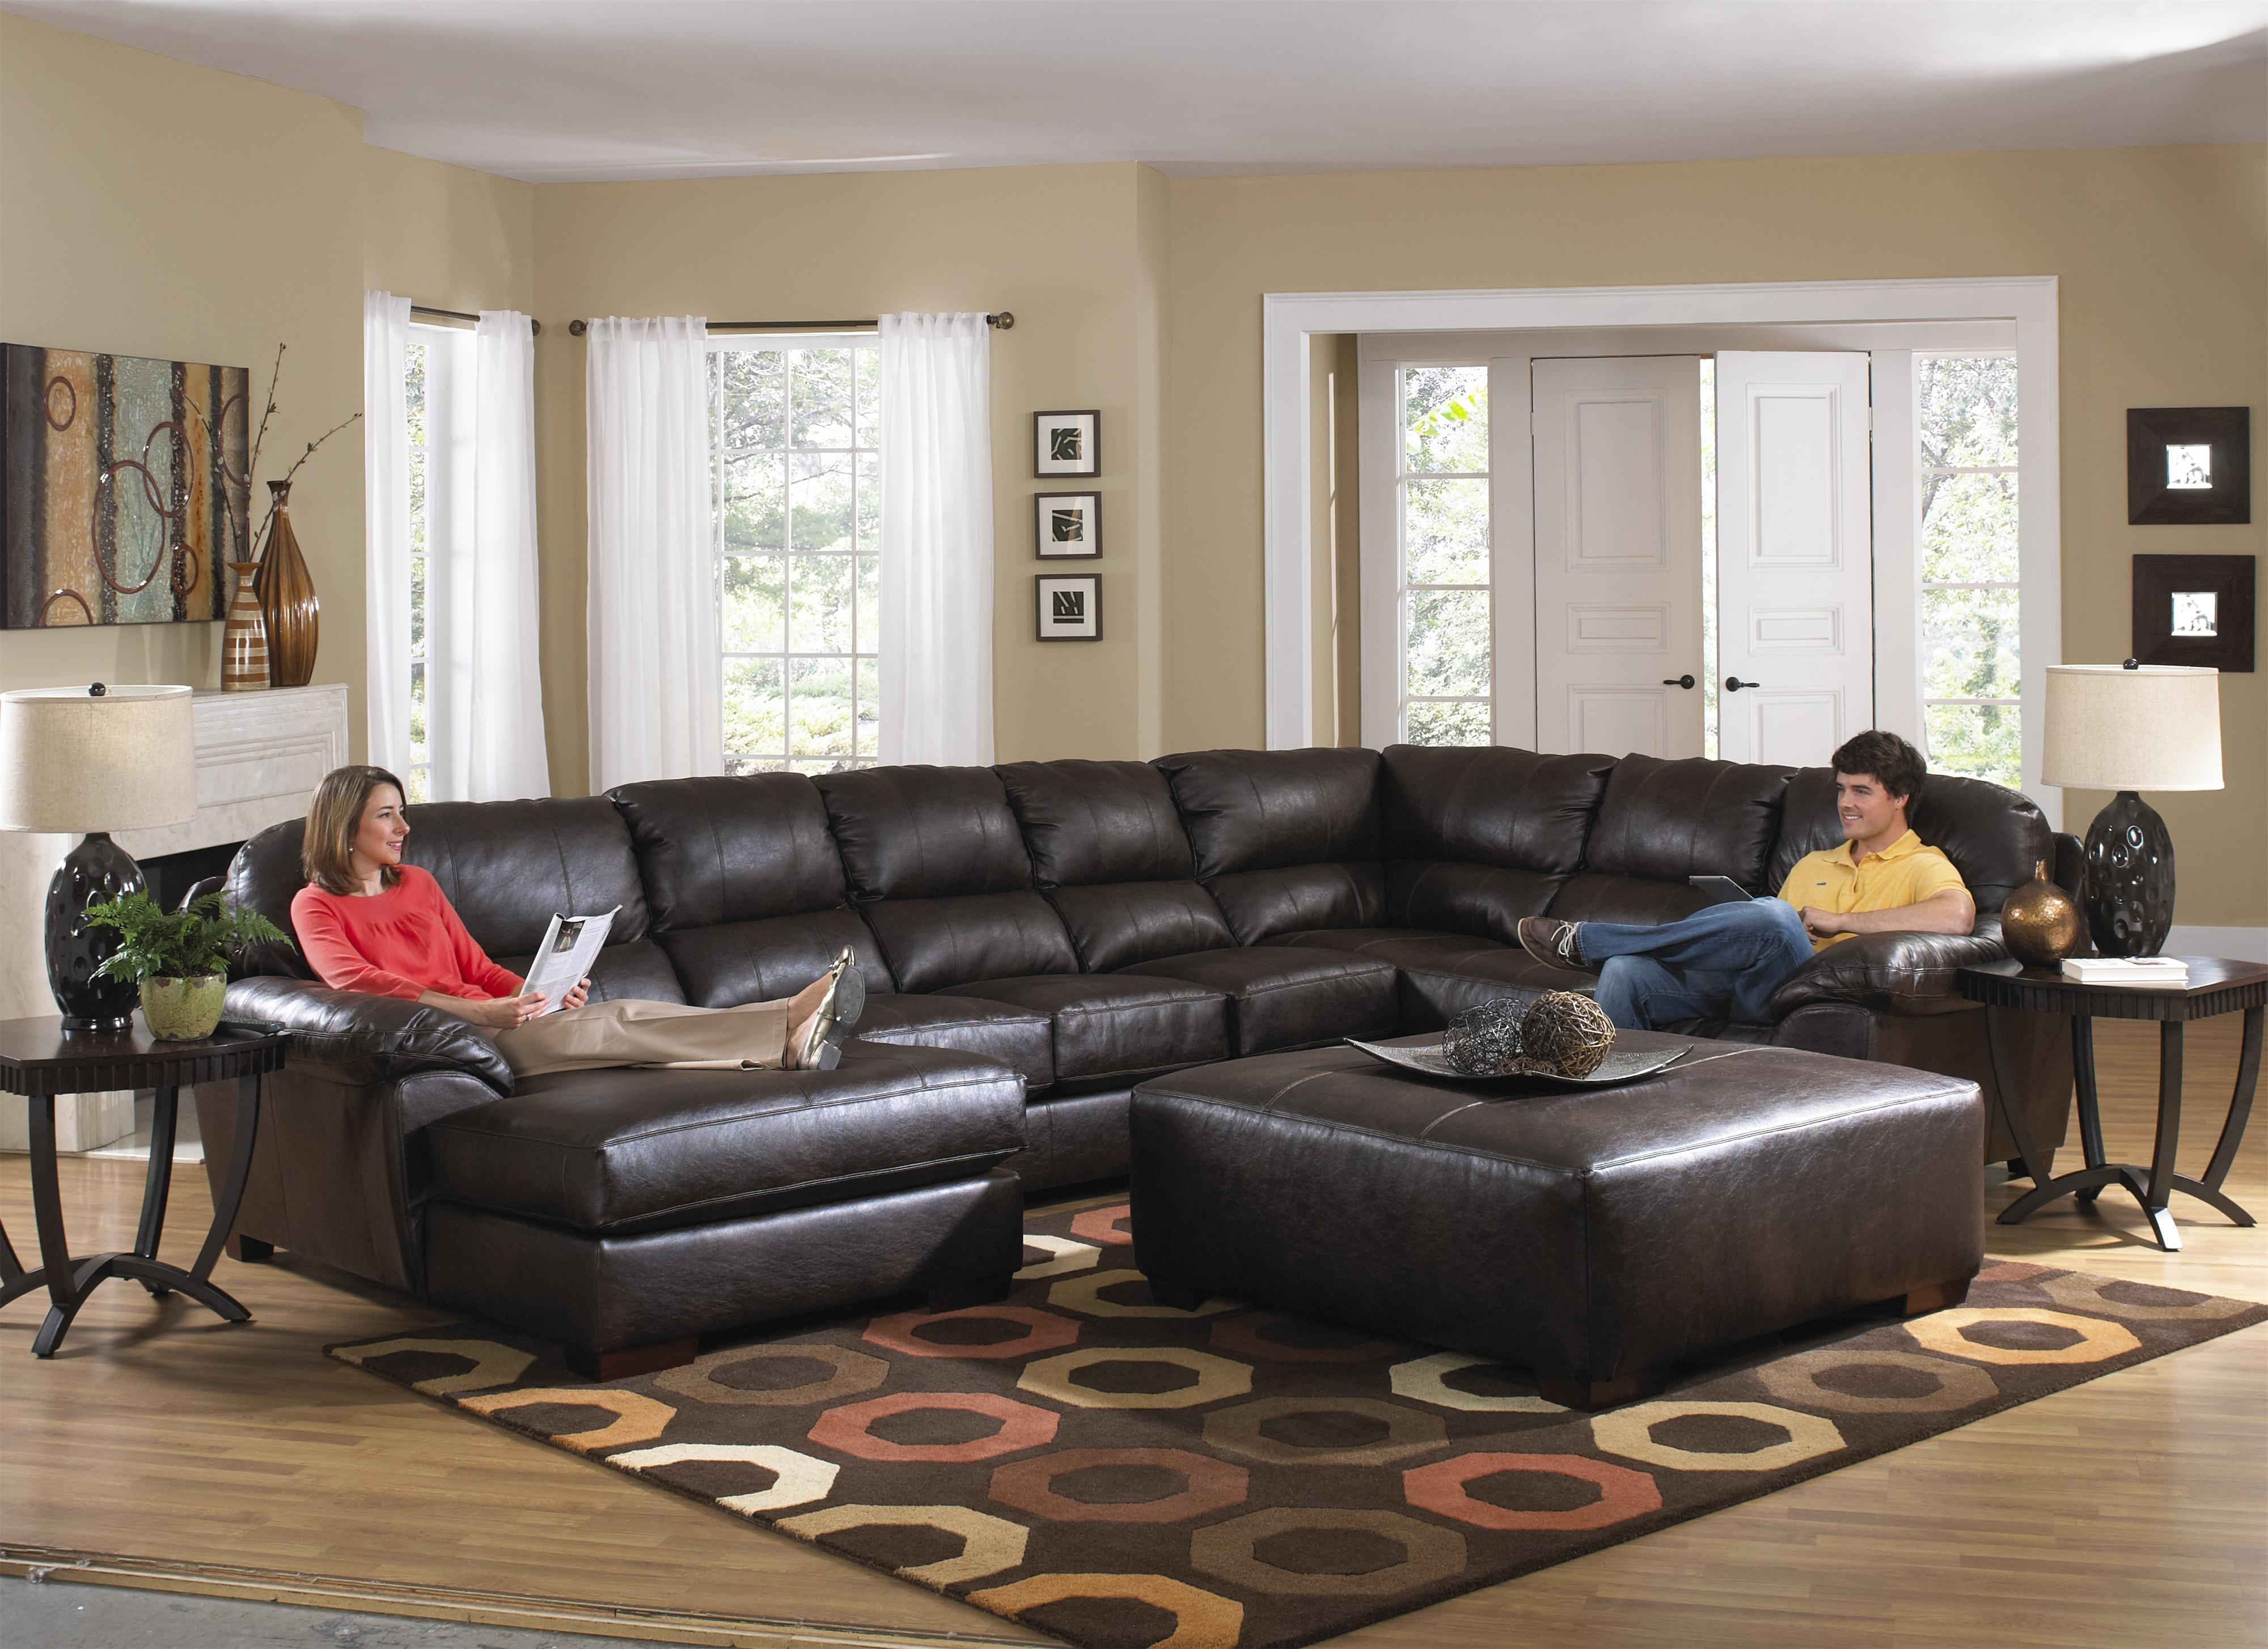 Huge Sofas Throughout Well Known Oversized Couches Ashley Furniture Extra Deep Couch Oversized (View 14 of 20)